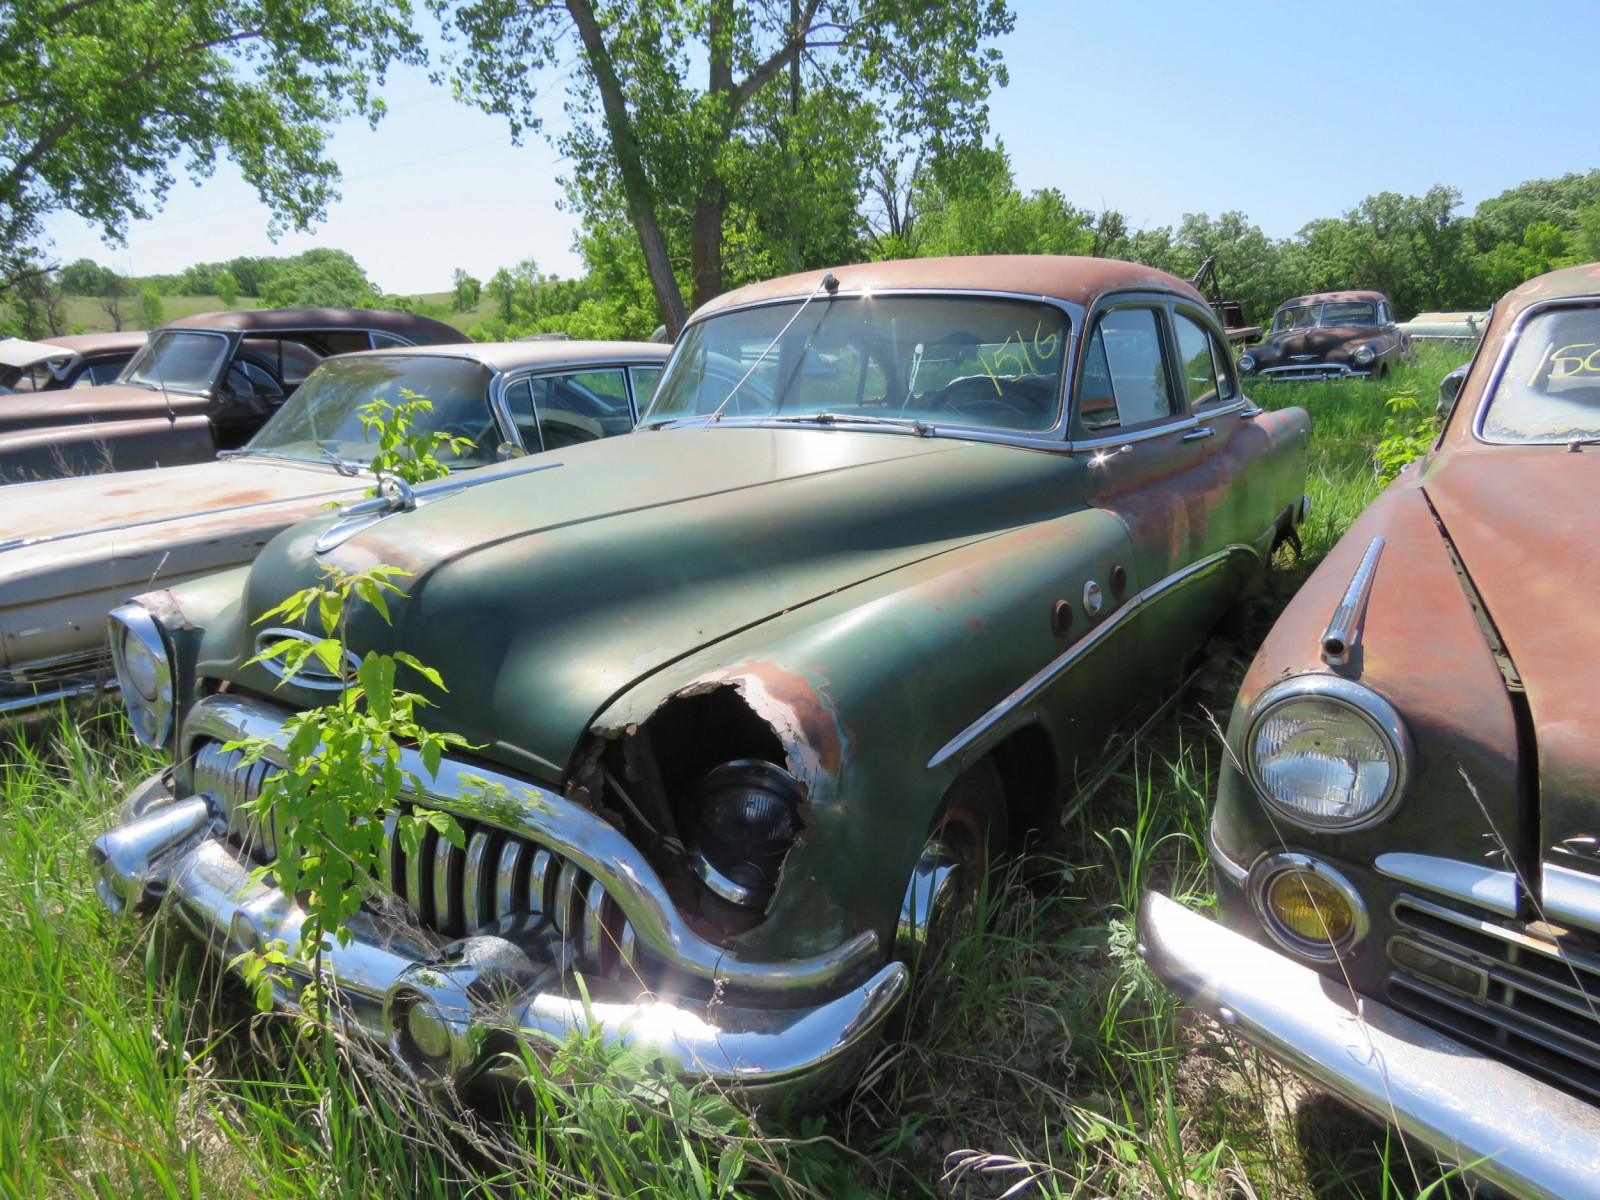 1953 Buick 8 4dr Sedan for Project or parts - Image 1